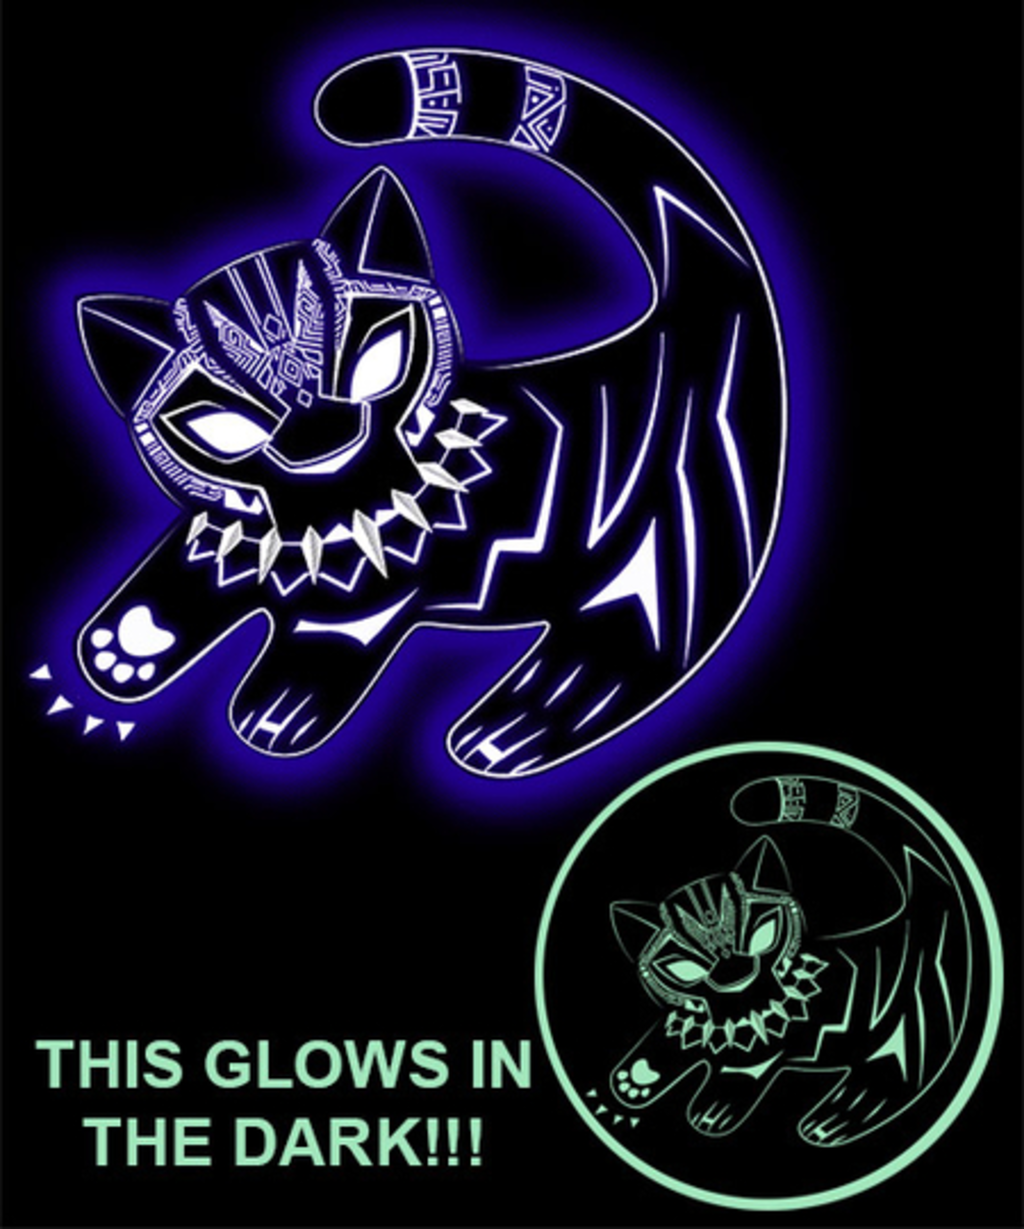 Qwertee: The glowing panther king